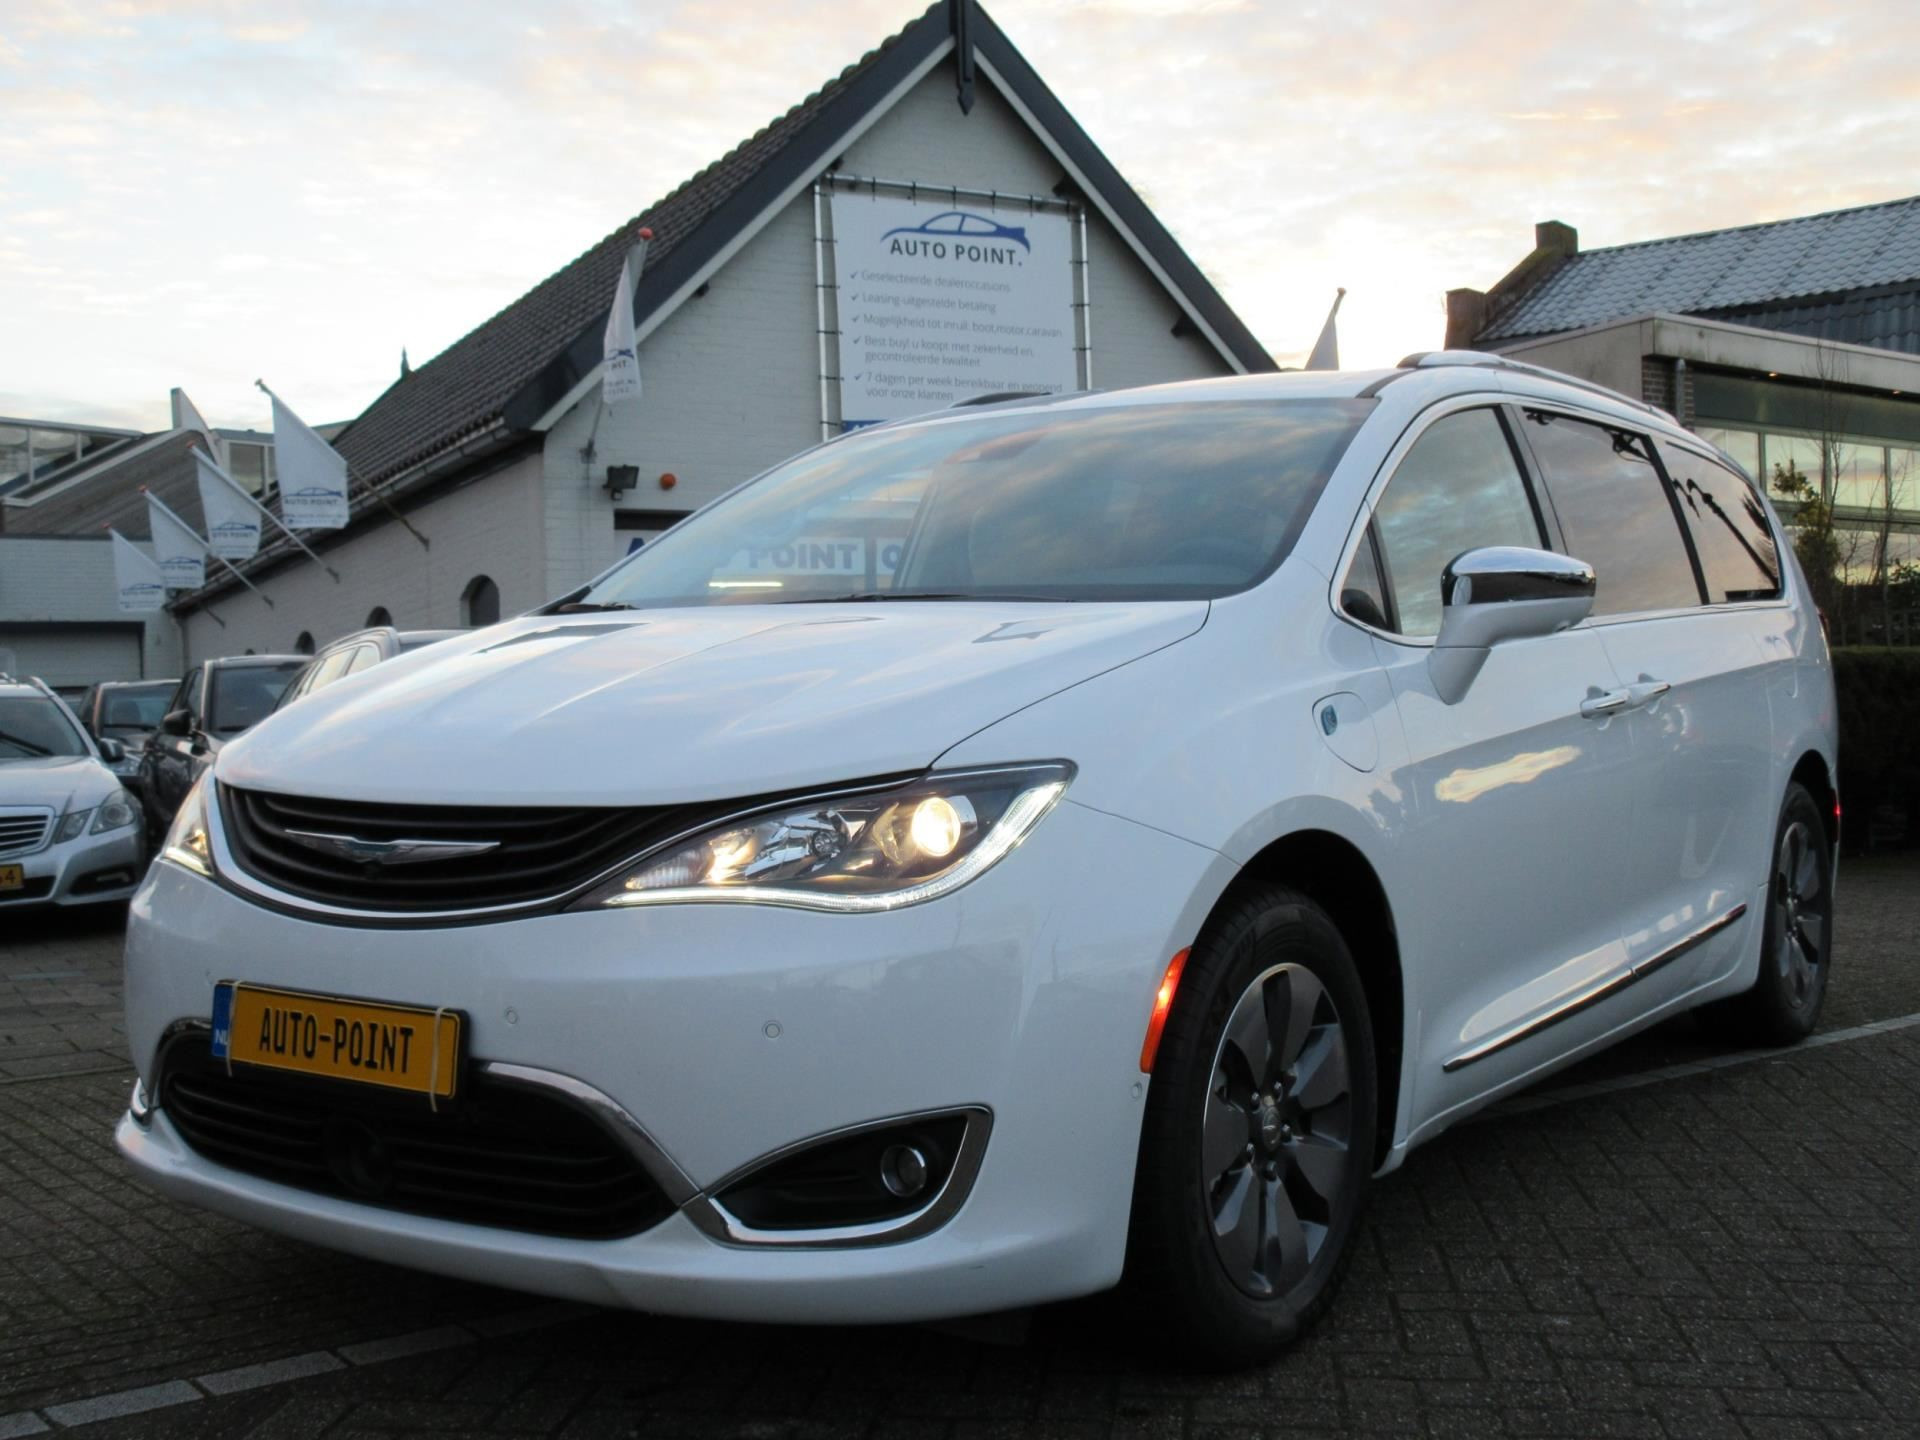 Chrysler CHRYSLER PACIFICA HYBRID occasion - Auto Point